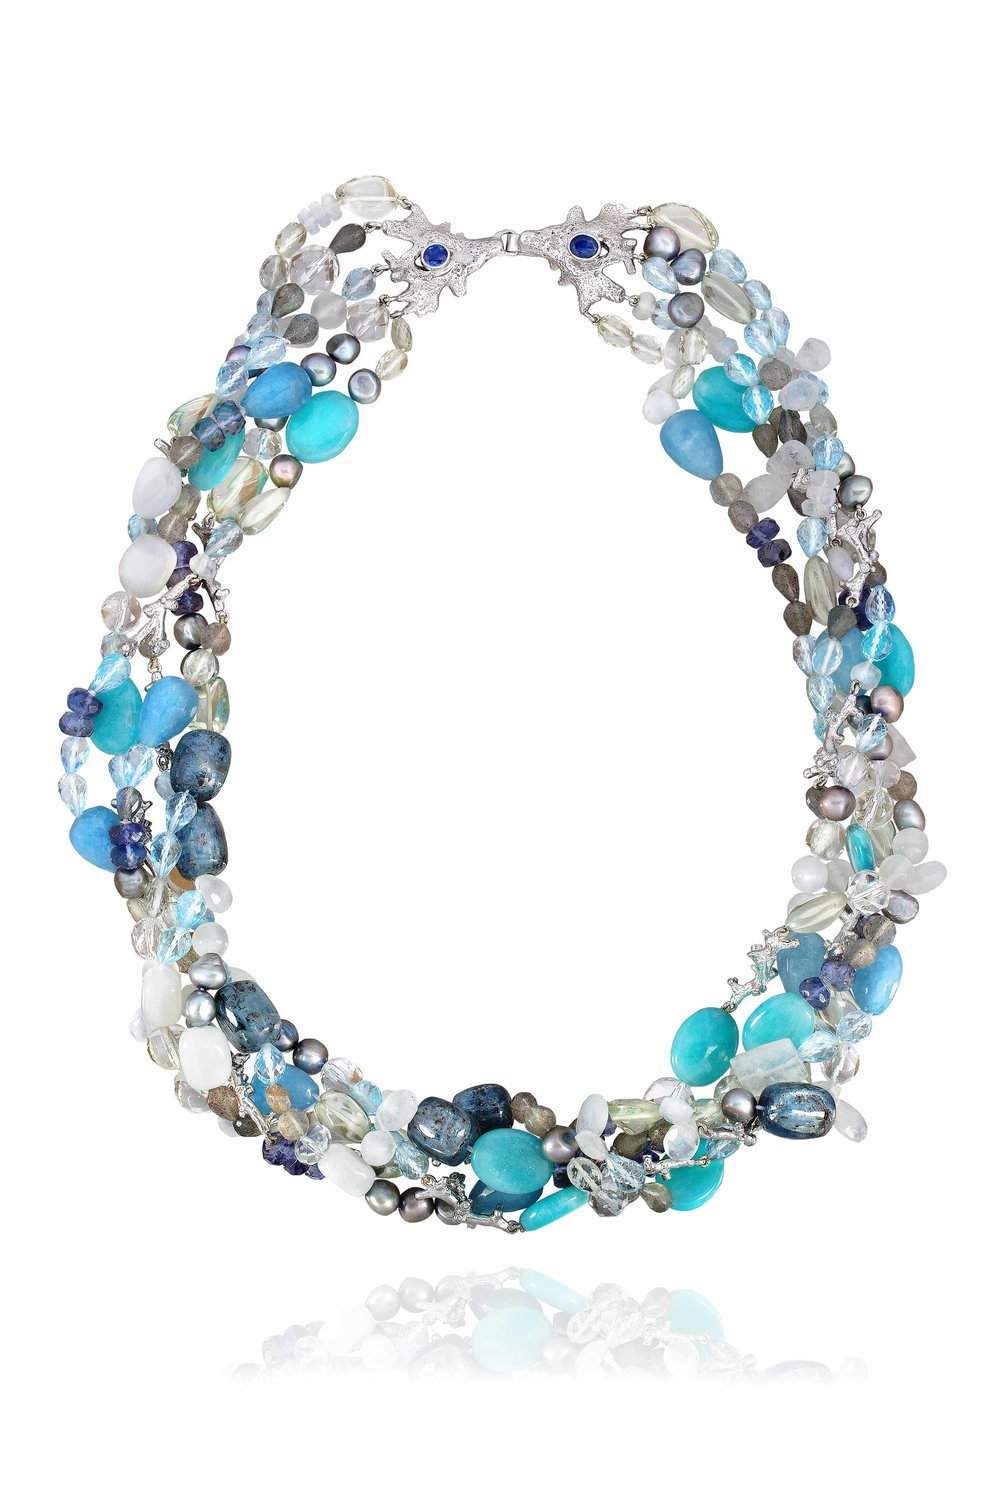 OFFICIAL - Esther Eyre - Blue Necklace (Complete) JPEG (Low Res).jpg